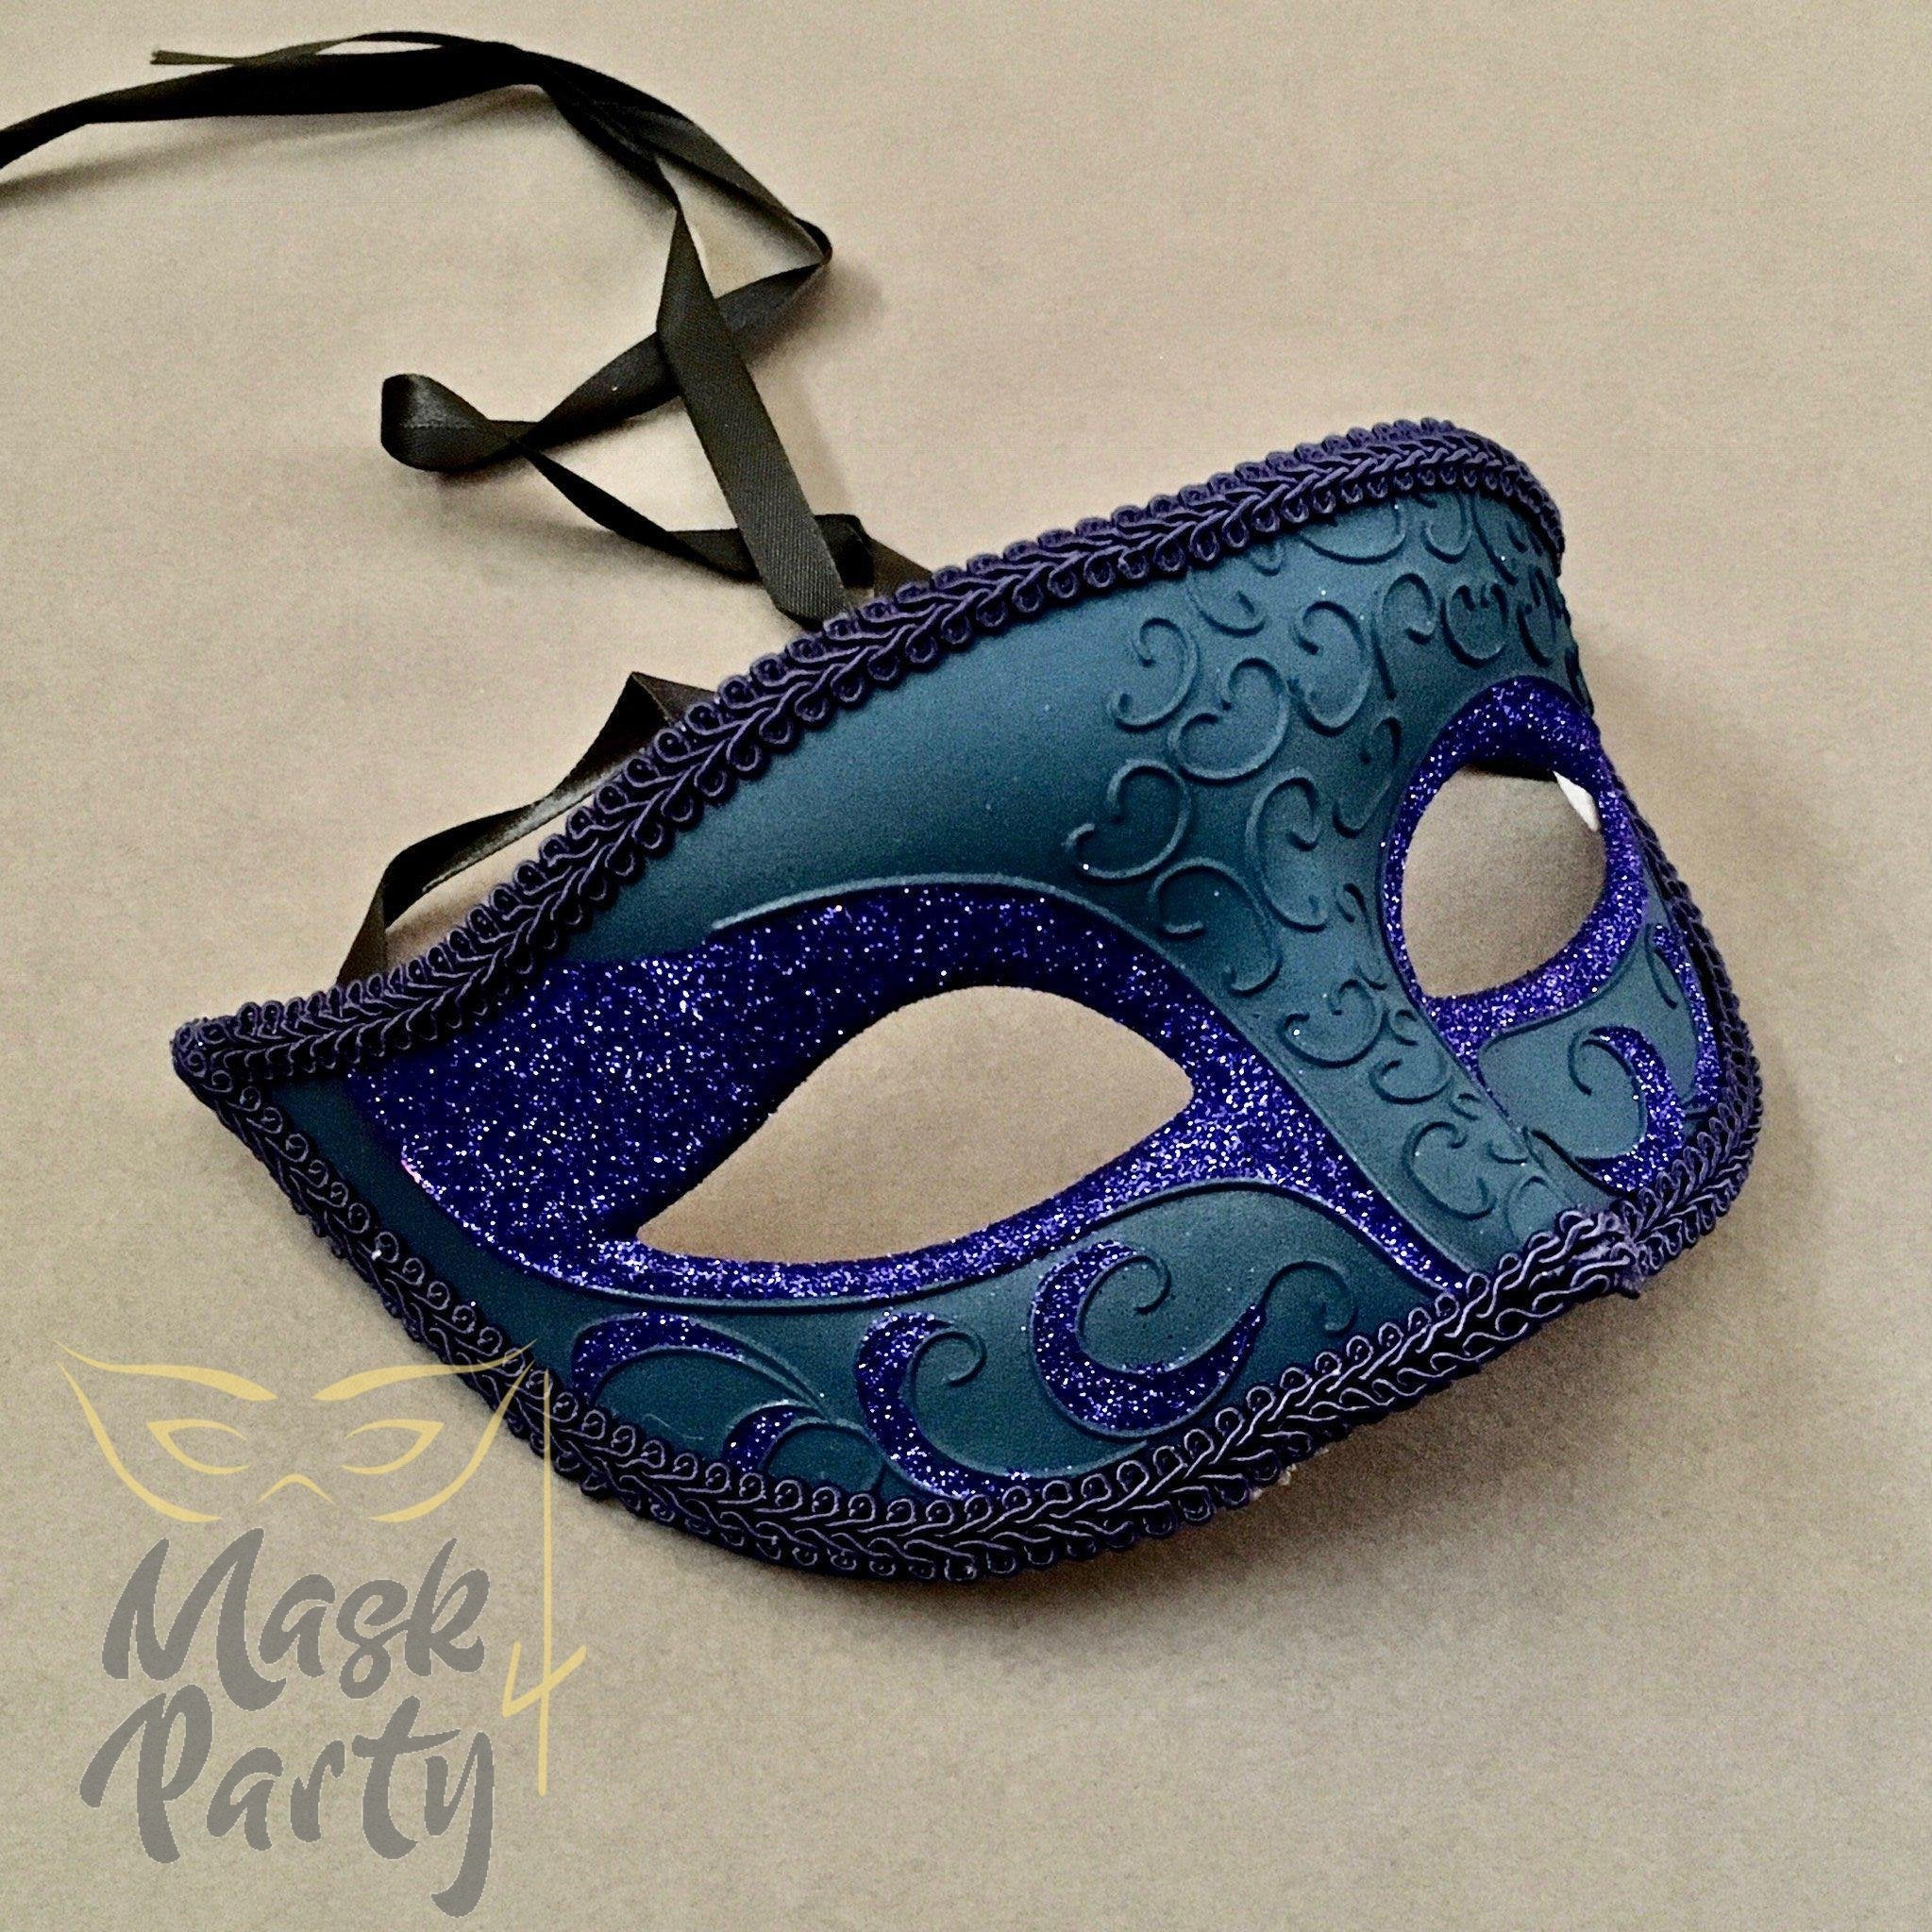 SALE - Masquerade Mask - Venetian Eye Glitter - Blue - Mask4Party